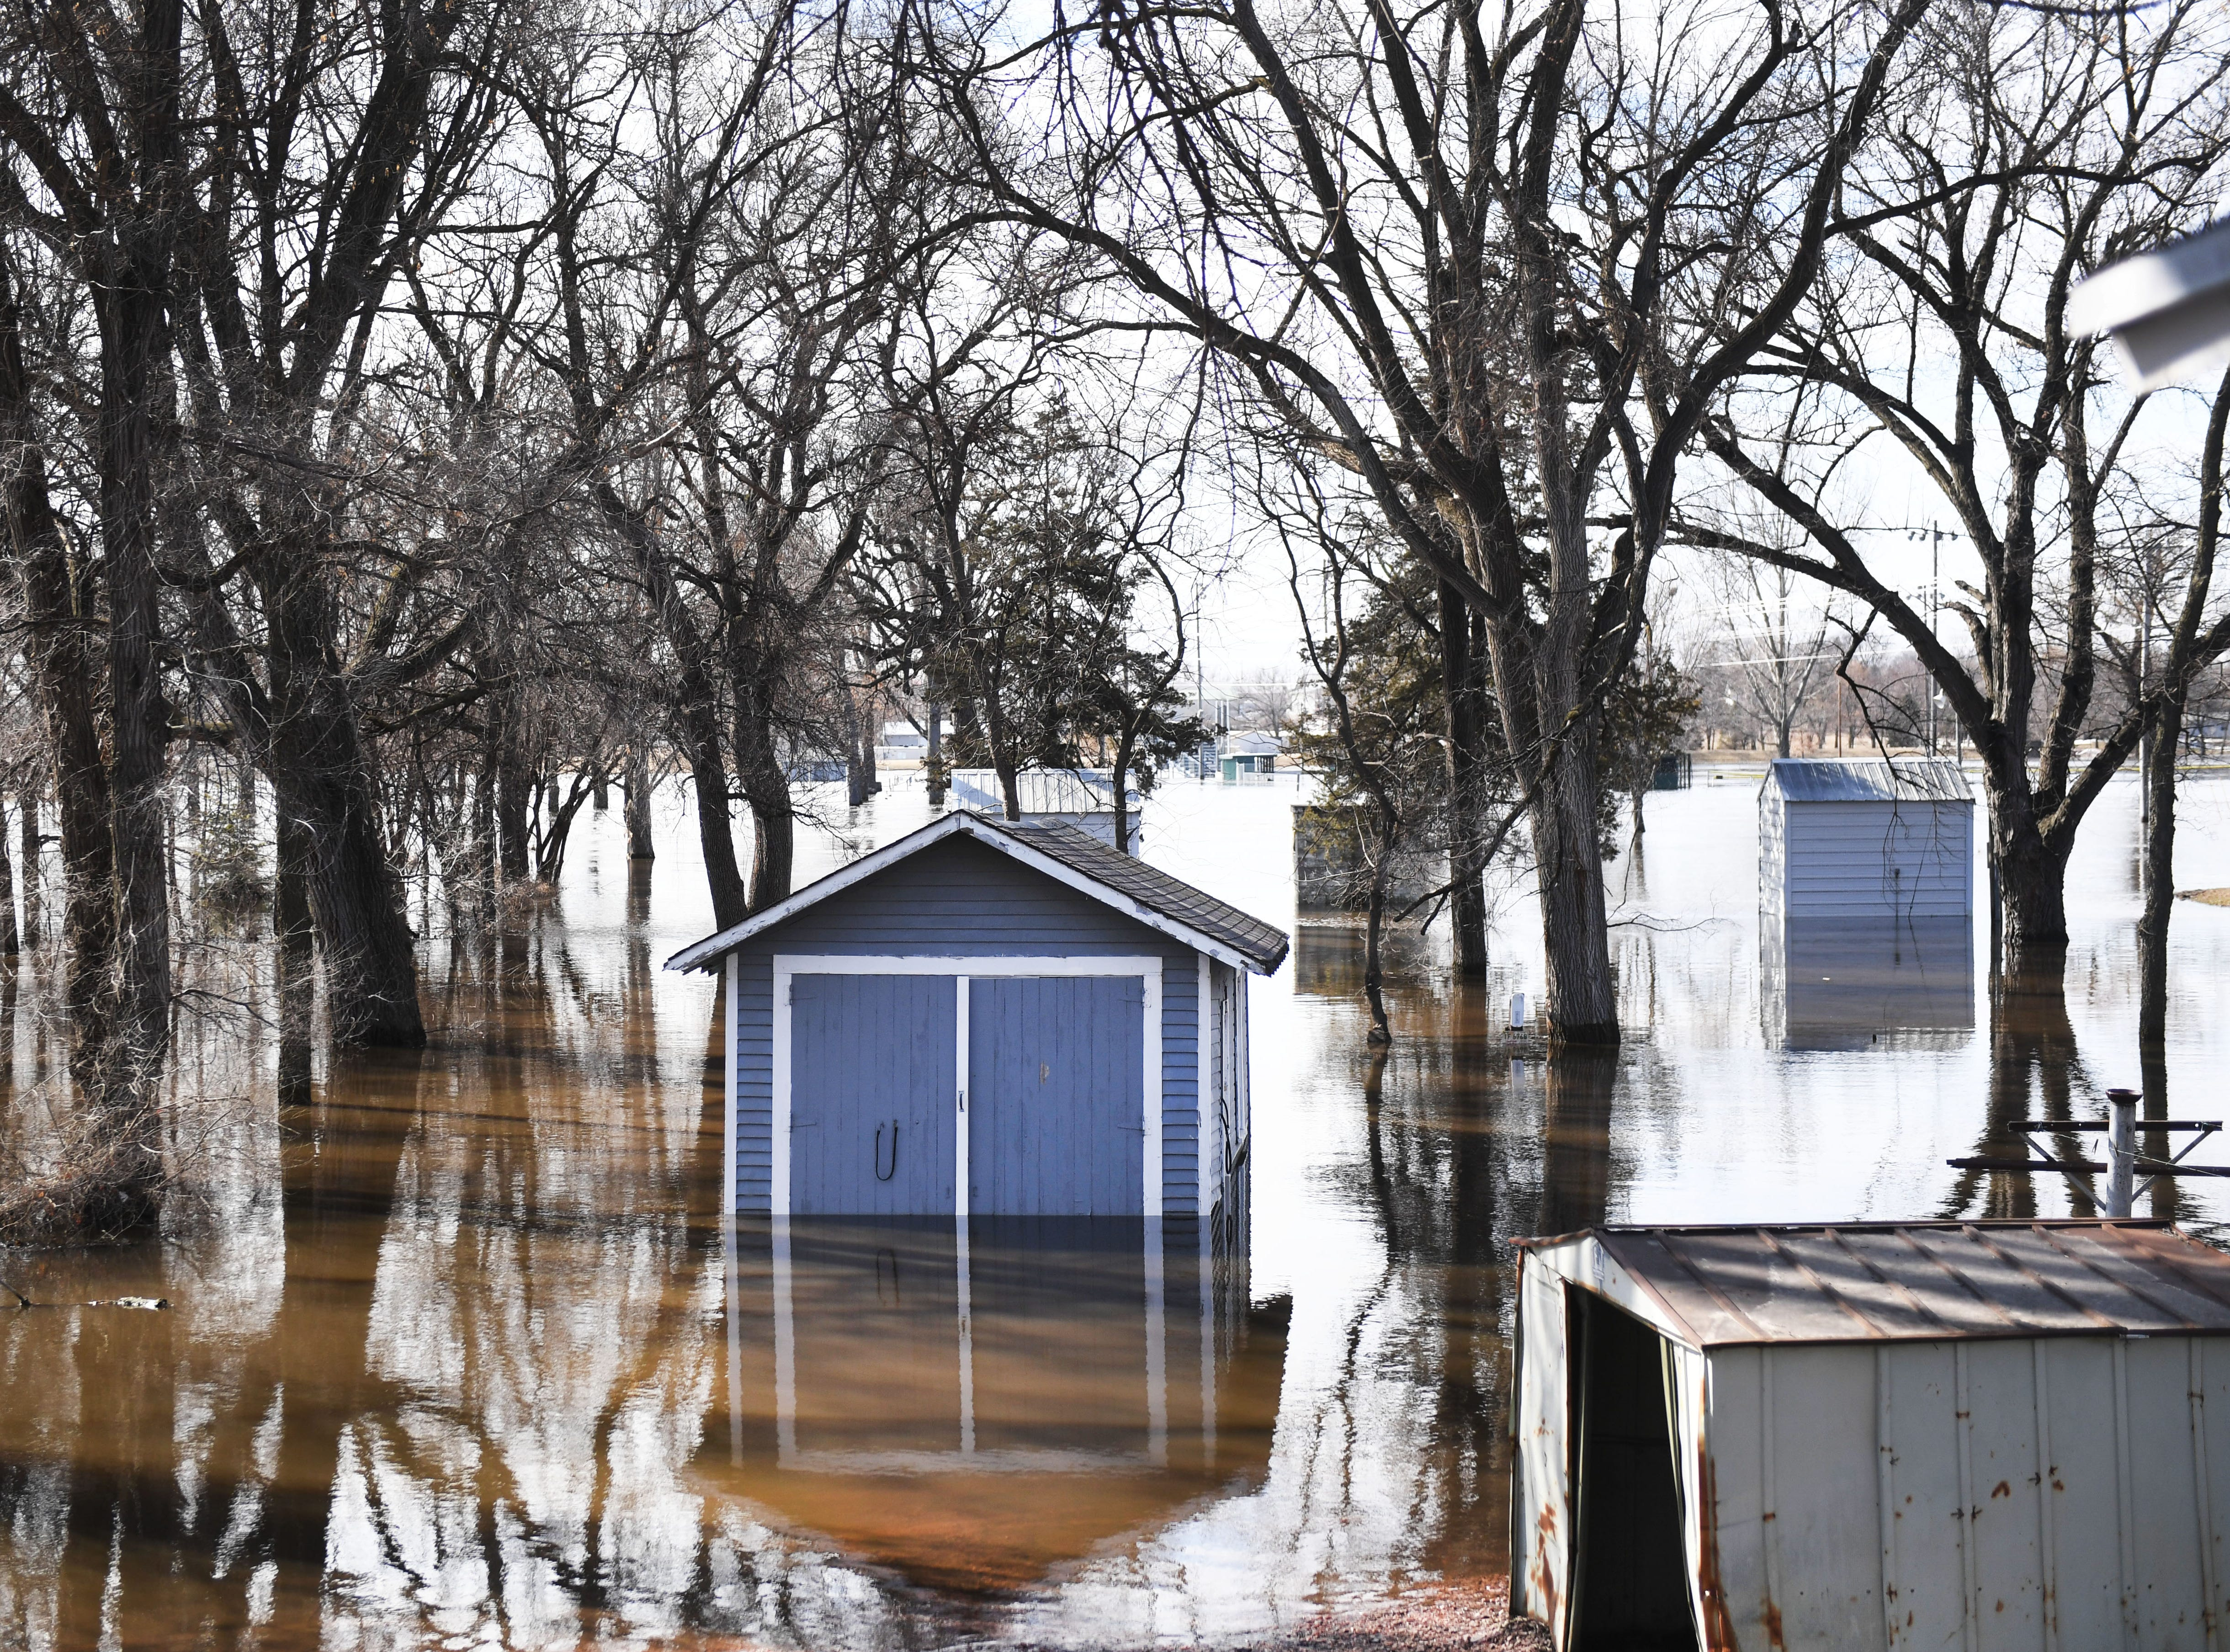 Sheds are flooded in Dell Rapids Monday, March 25, in Dell Rapids, S.D.